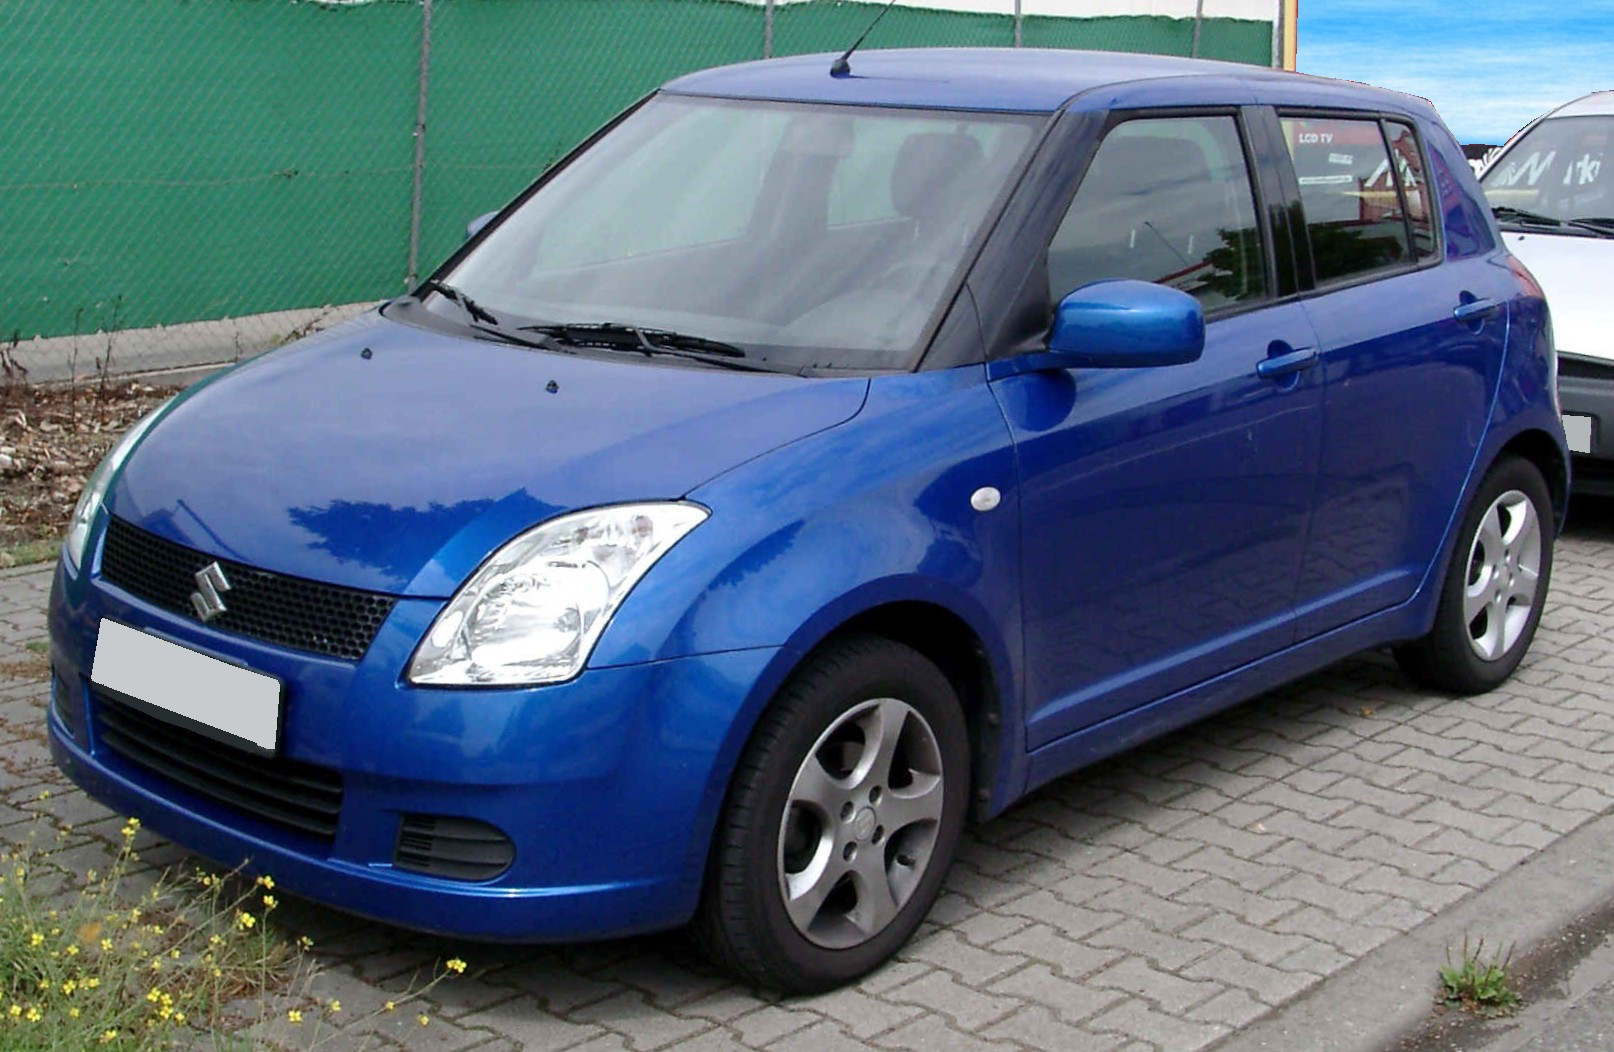 Suzuki Swift 1.3 2008 photo - 1